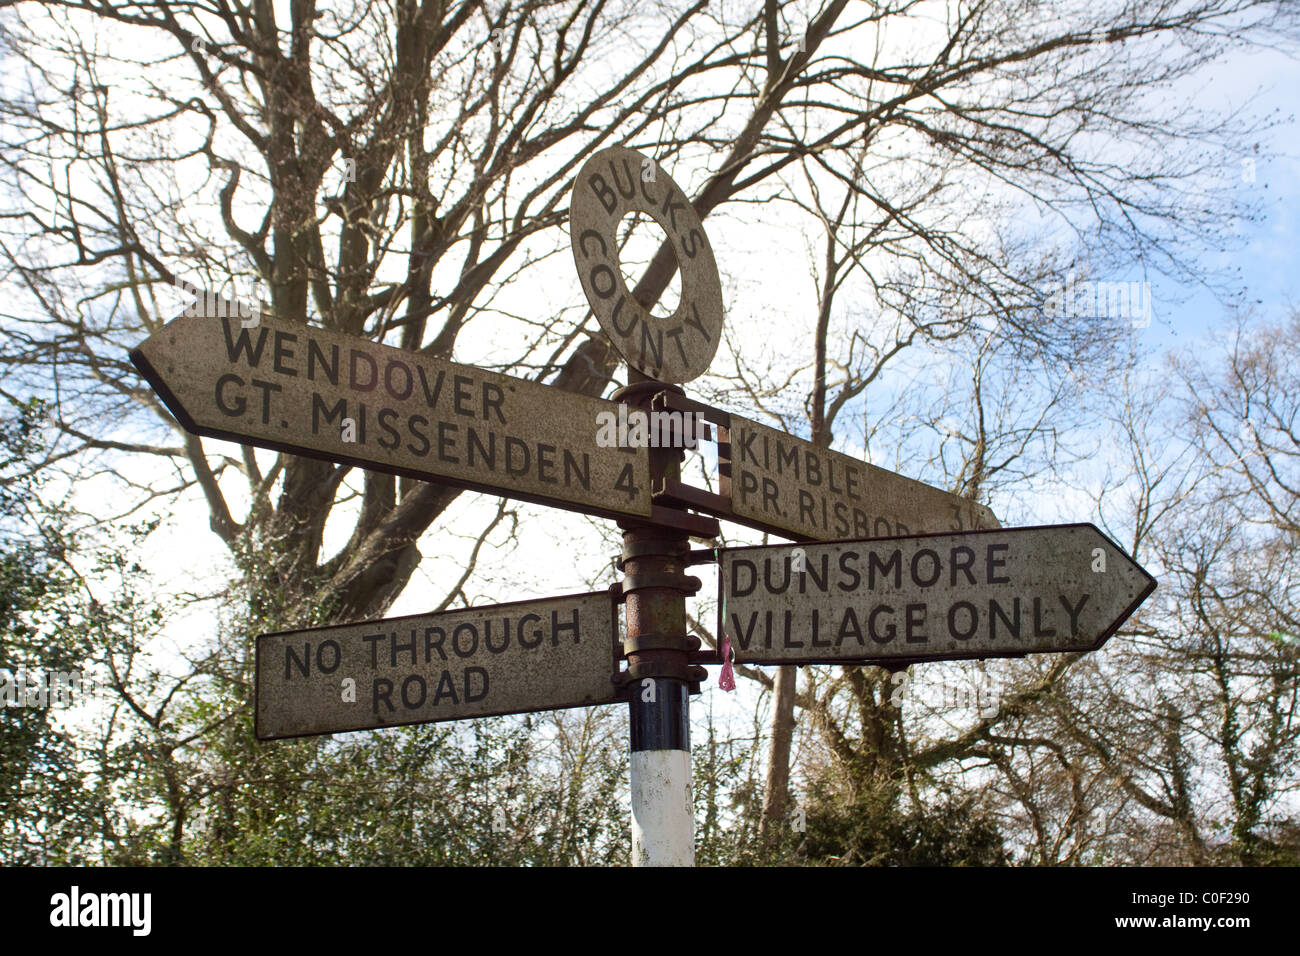 Signpost in Buckinghamshire pointing to Dunsmore, Wendover and Great Missenden - Stock Image